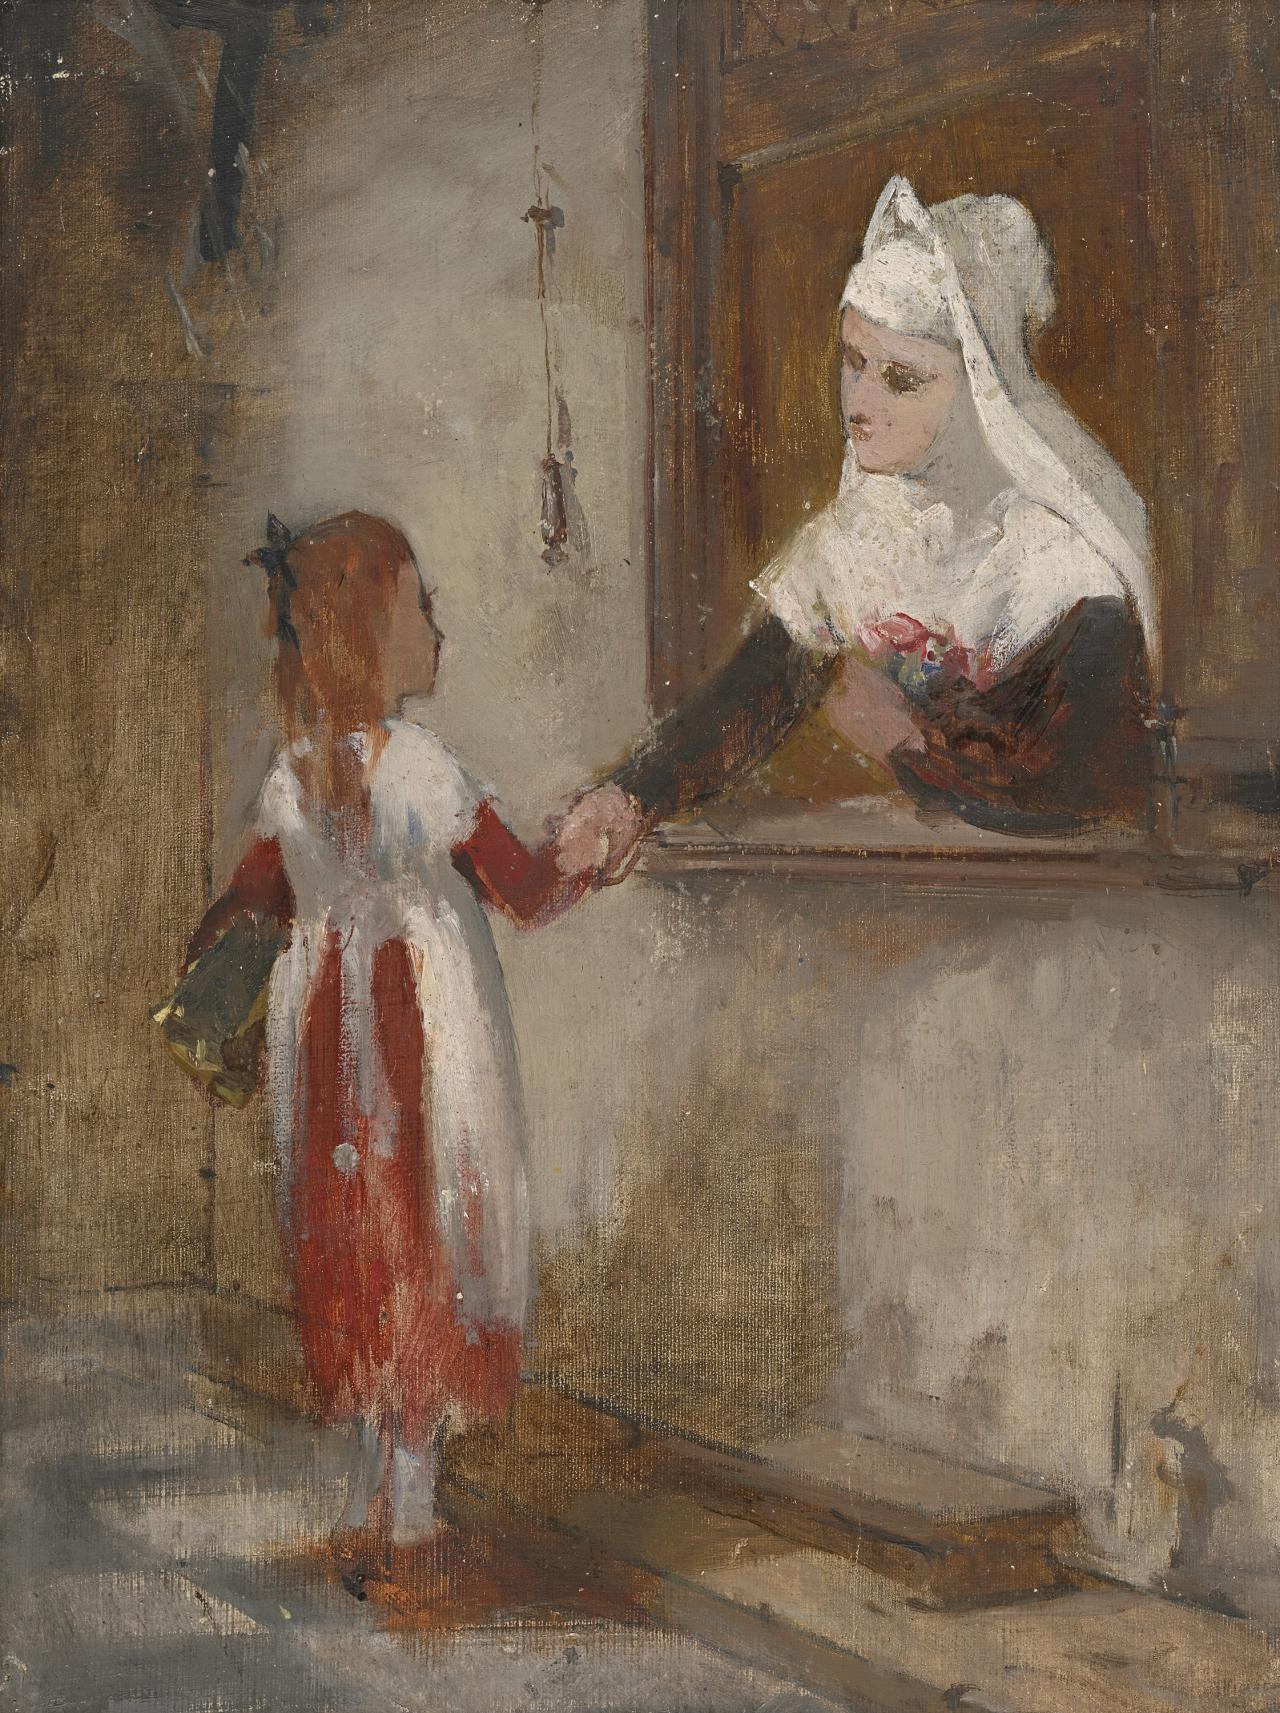 Study for picture: Nun and child